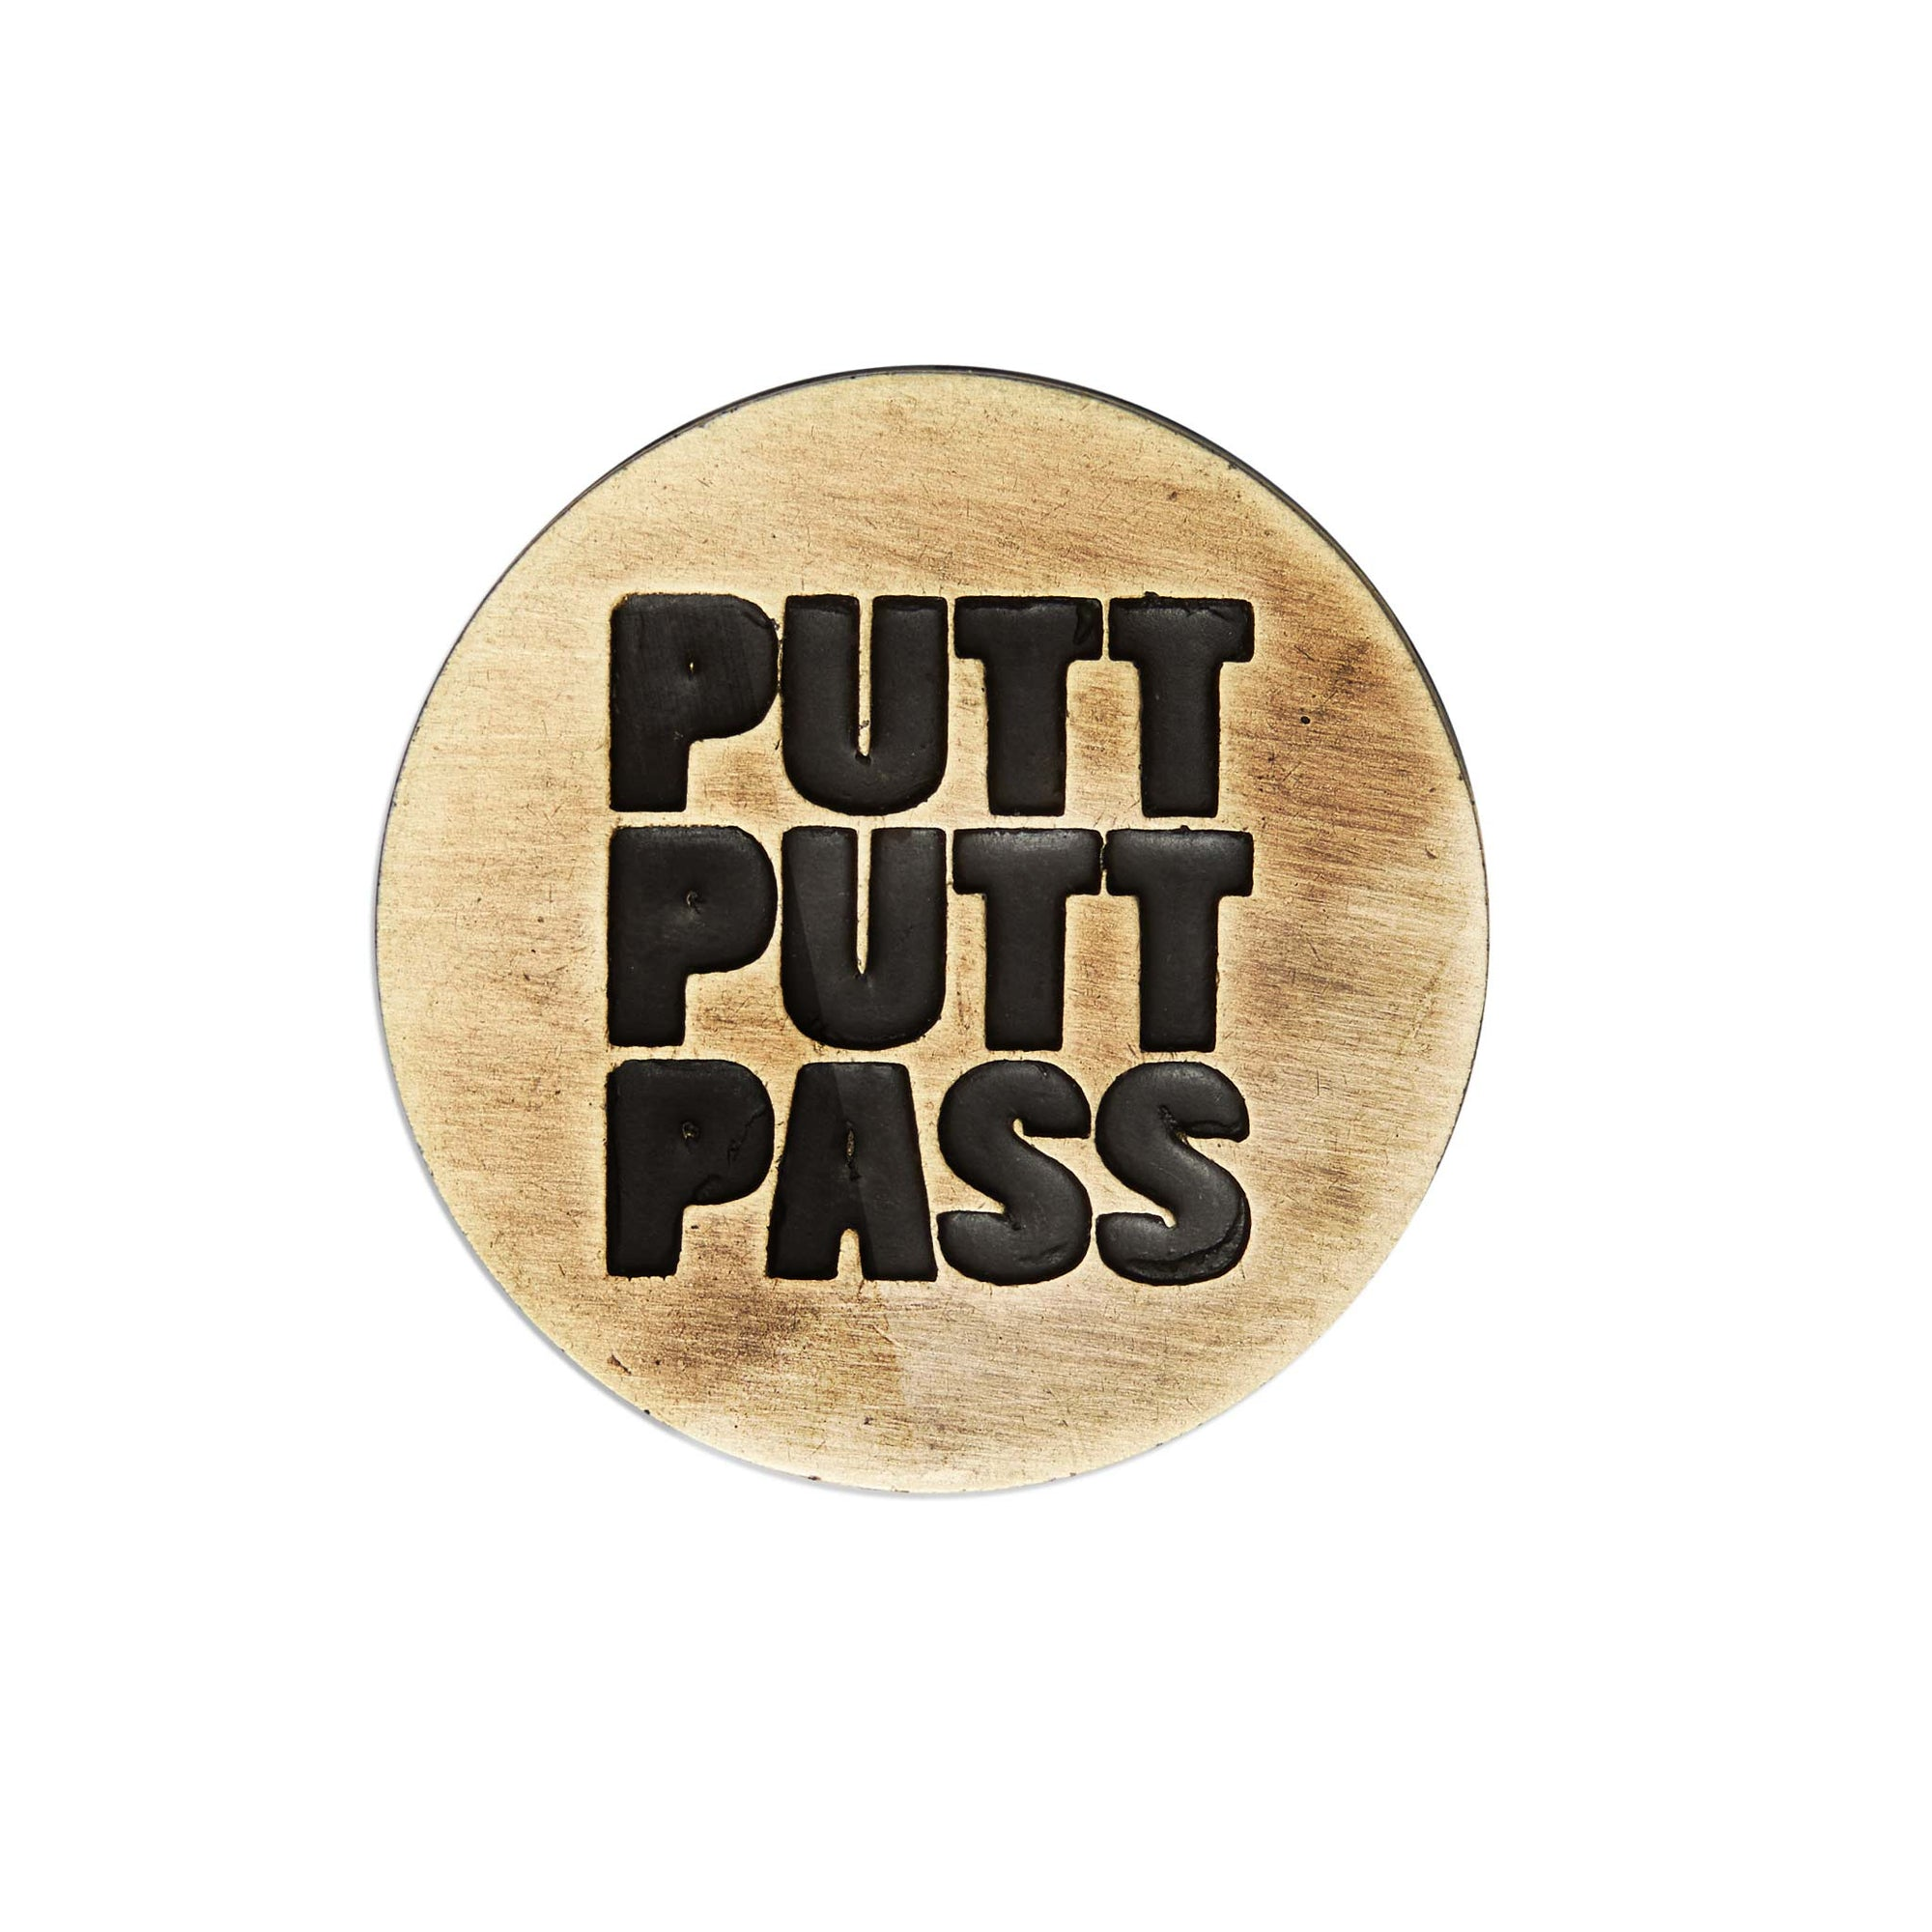 birds-of-condor-putt-putt-pass-brass-golf-ball-marker-front